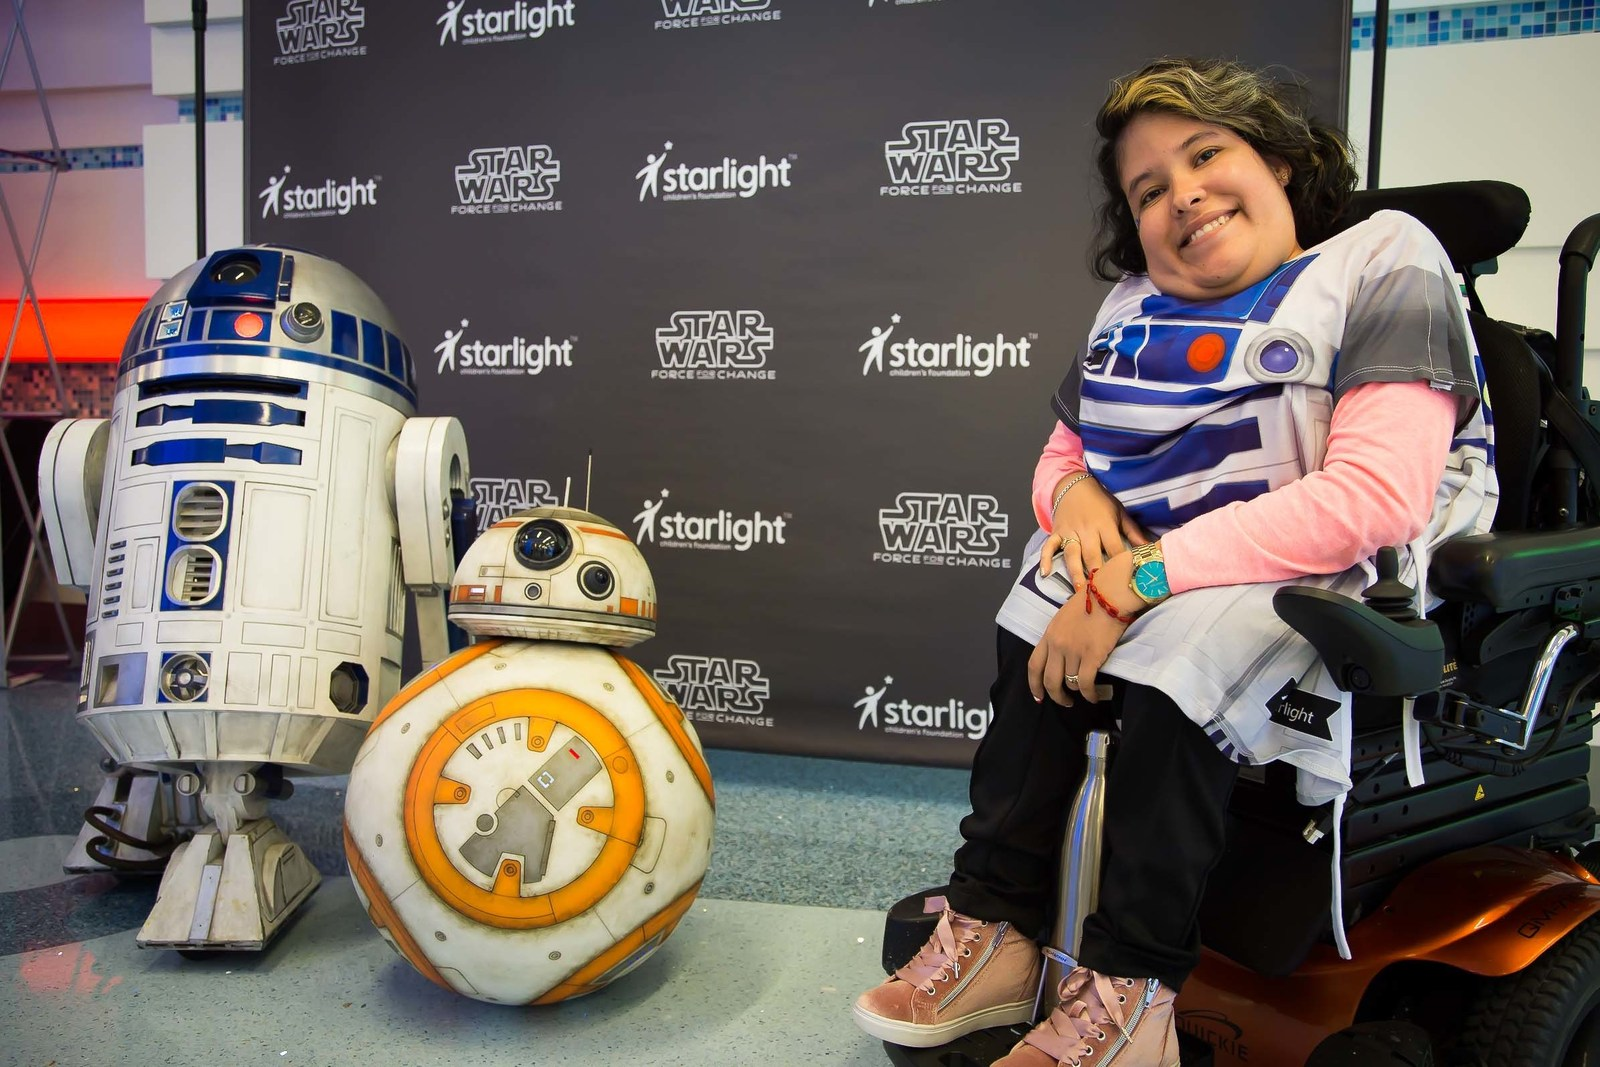 Pediatric patients at CHOC Children's Hospital in Orange County, Calif., enjoy a day of fun activities with their favorite Star Wars characters and the first-ever distribution of new Star Wars-themed Starlight Brave Gowns.